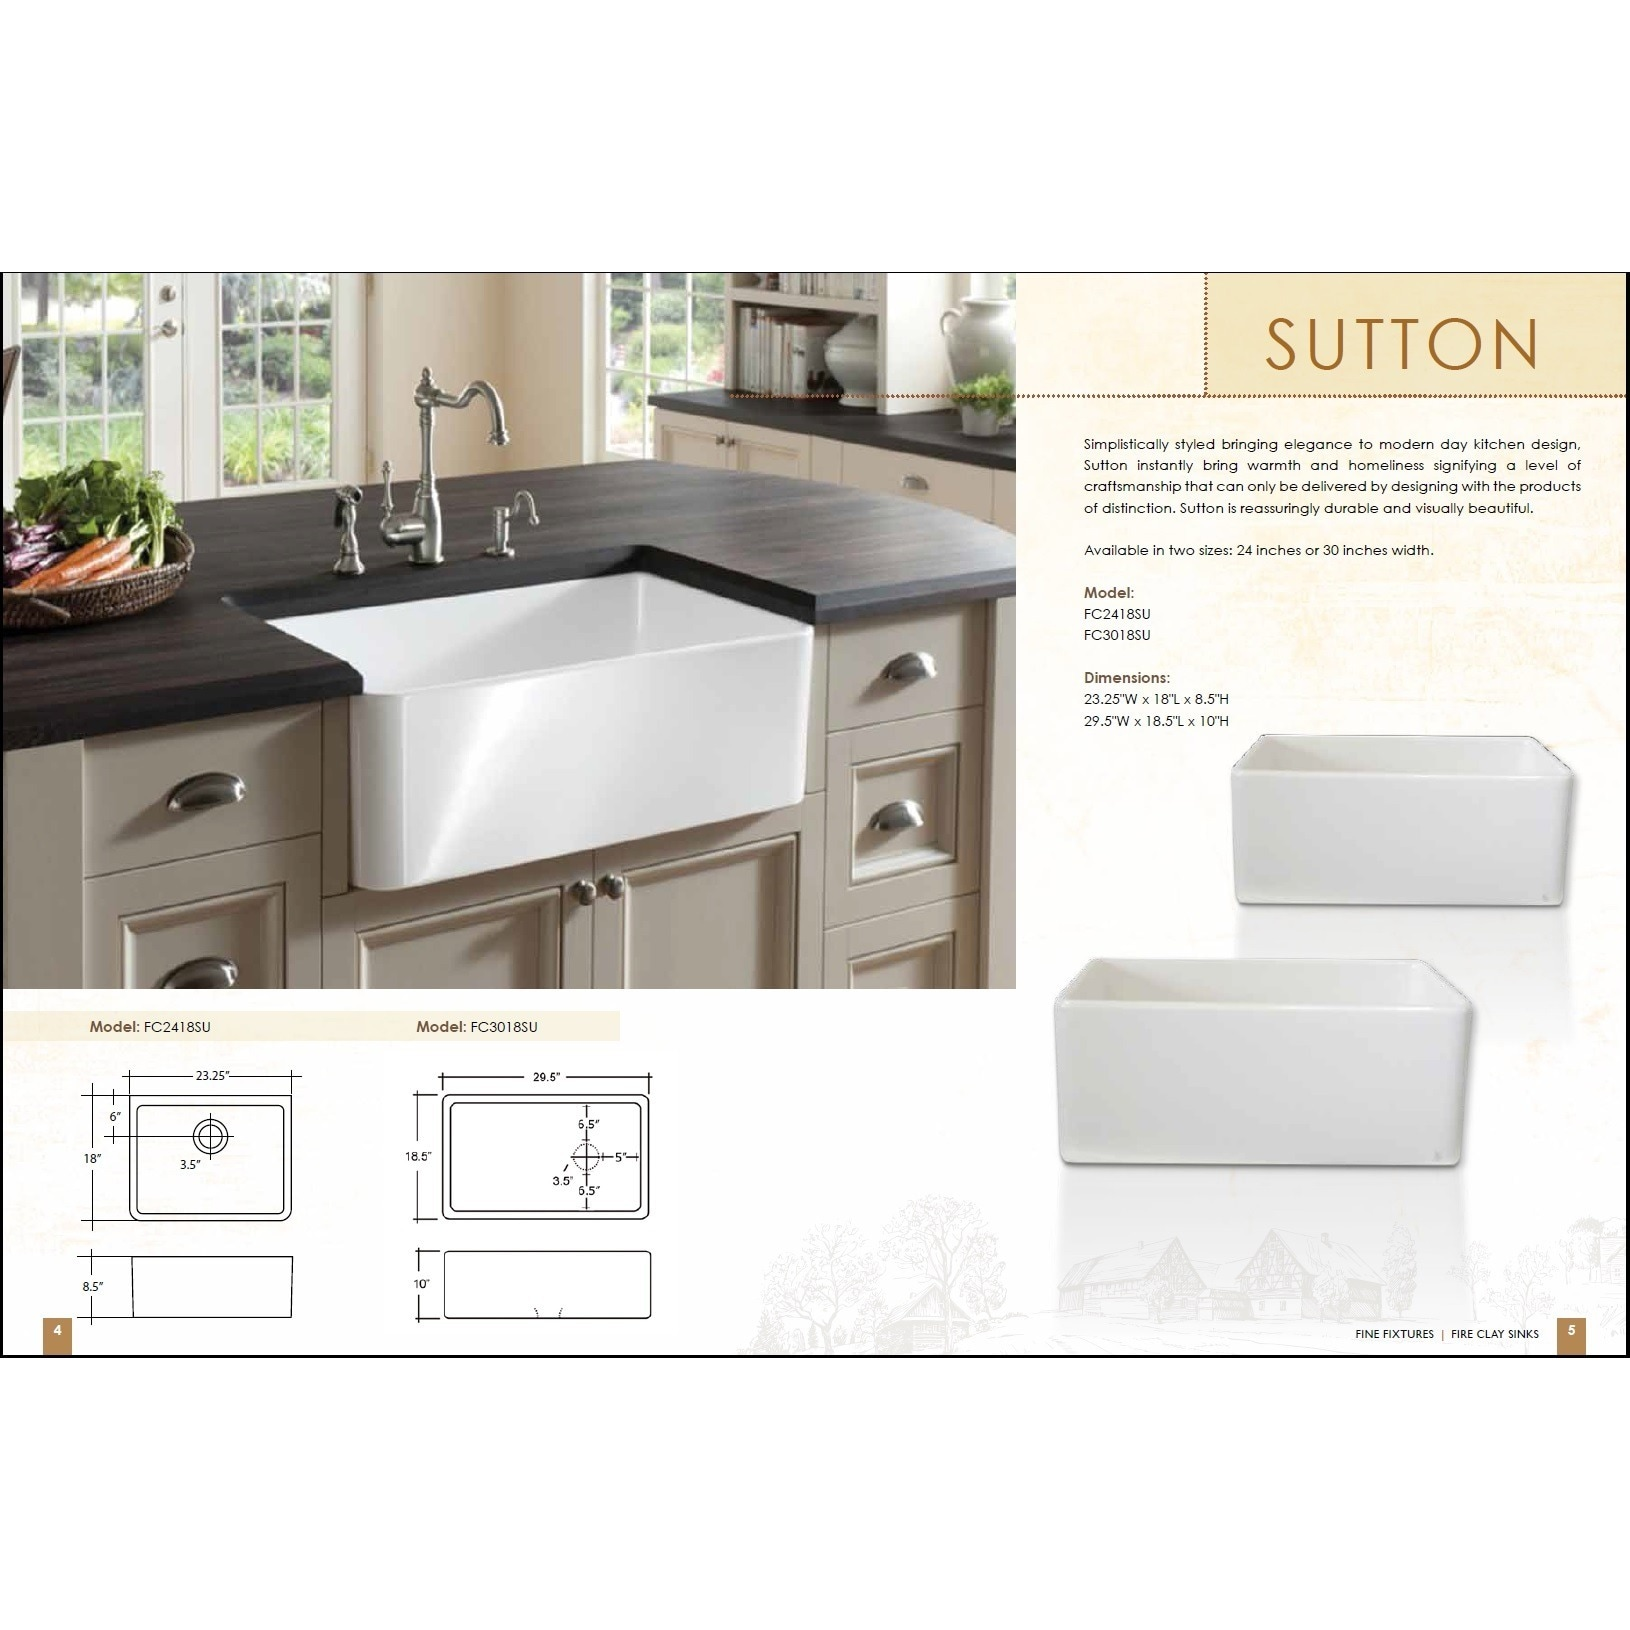 Fine fixtures large white fireclay apron front 295 inch farmhouse fine fixtures large white fireclay apron front 295 inch farmhouse kitchen sink free shipping today overstock 14063343 workwithnaturefo